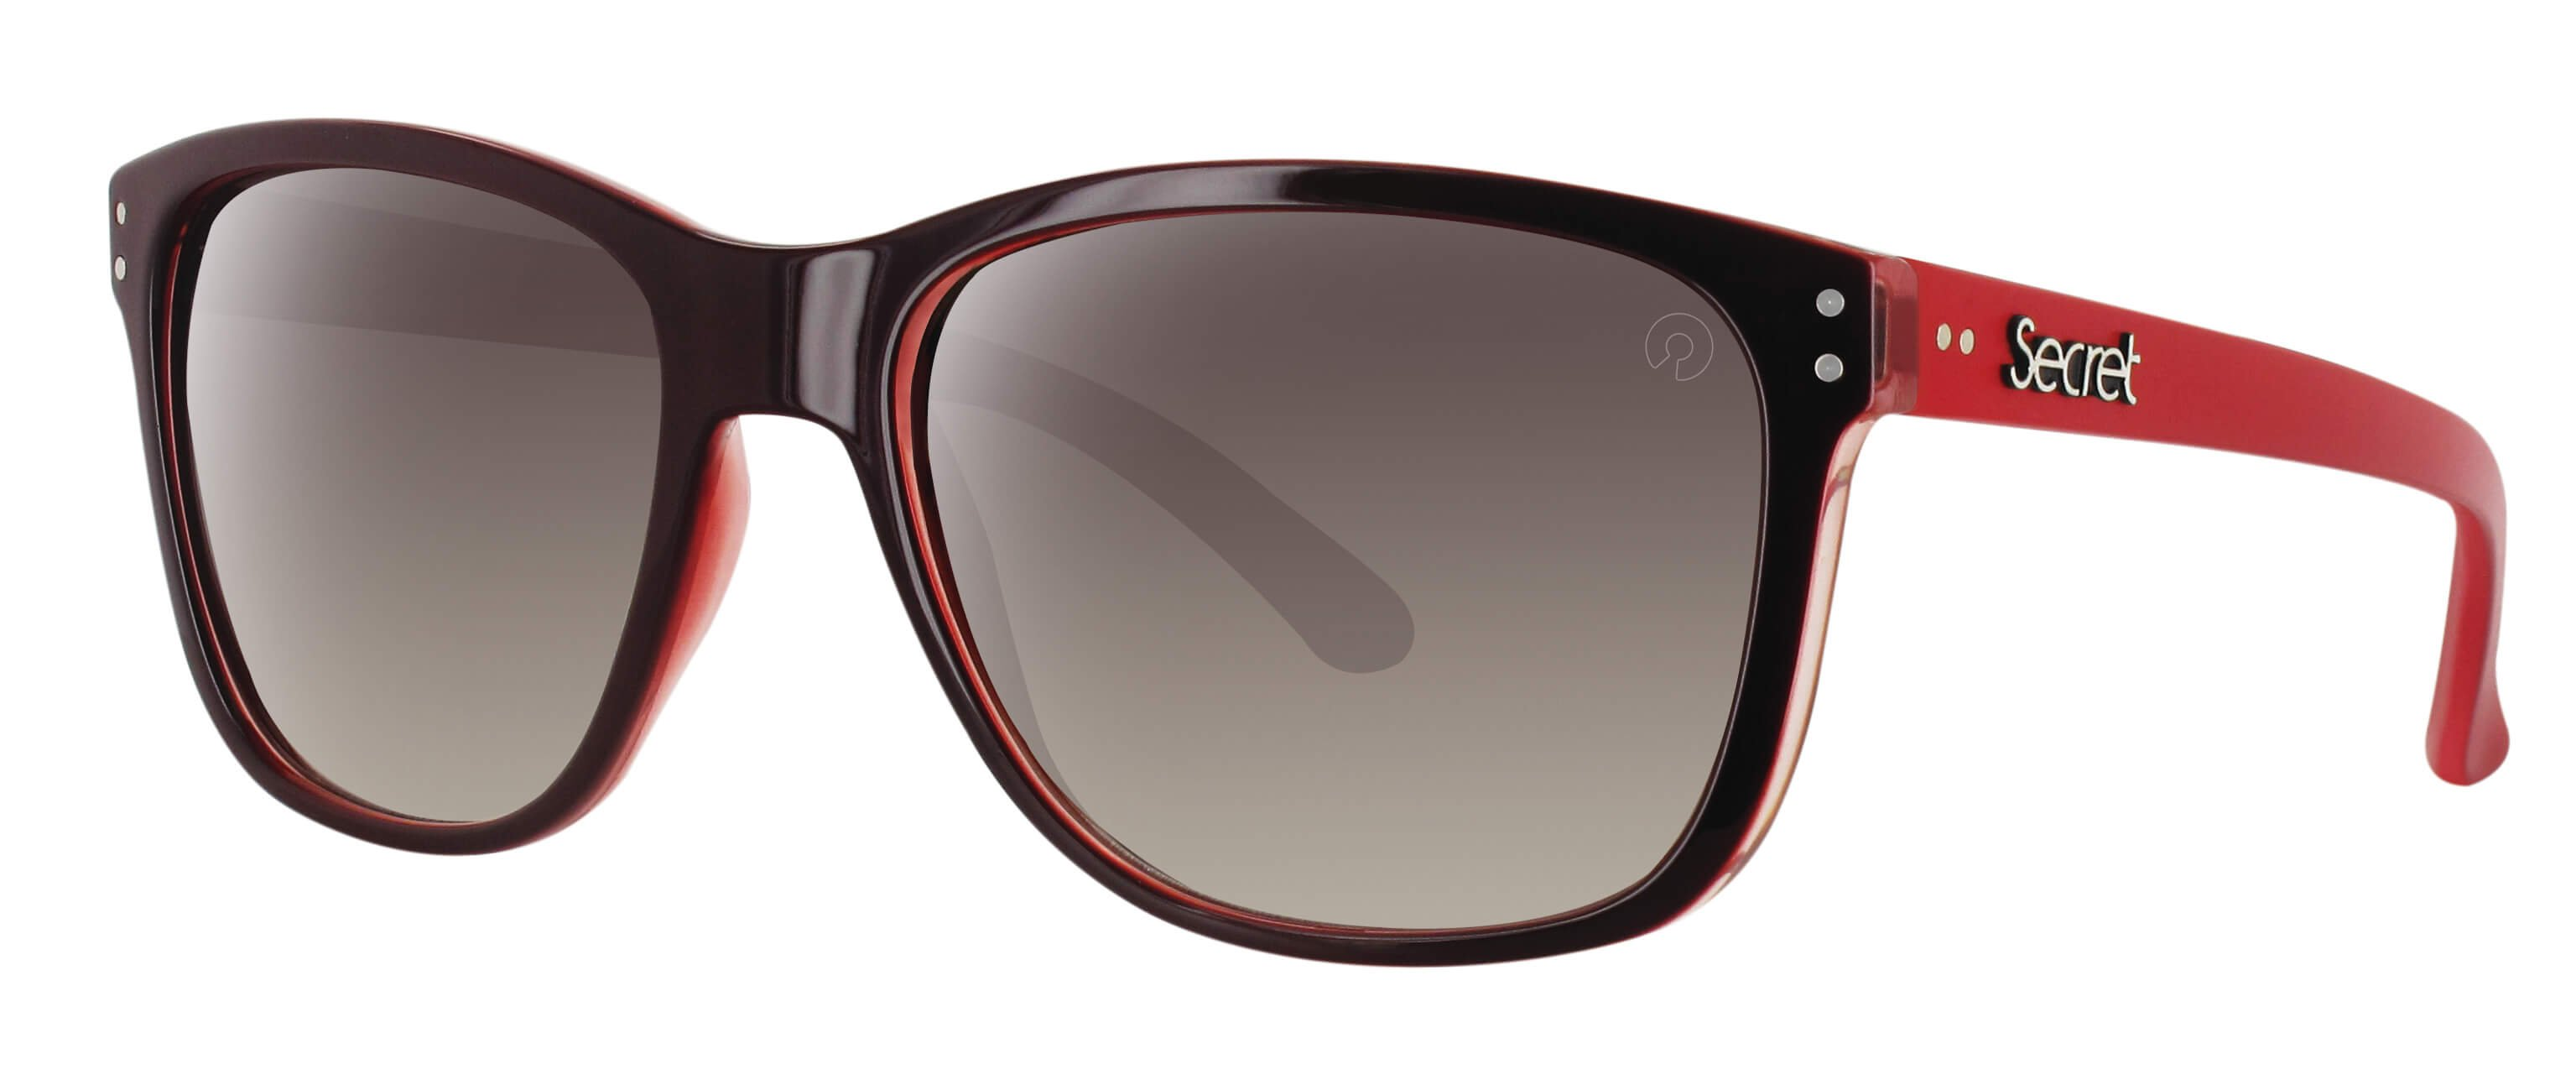 ÓC SECRET ZOE RED/MATTE LIGHT RED / POLARIZED GRADIENT BROWN